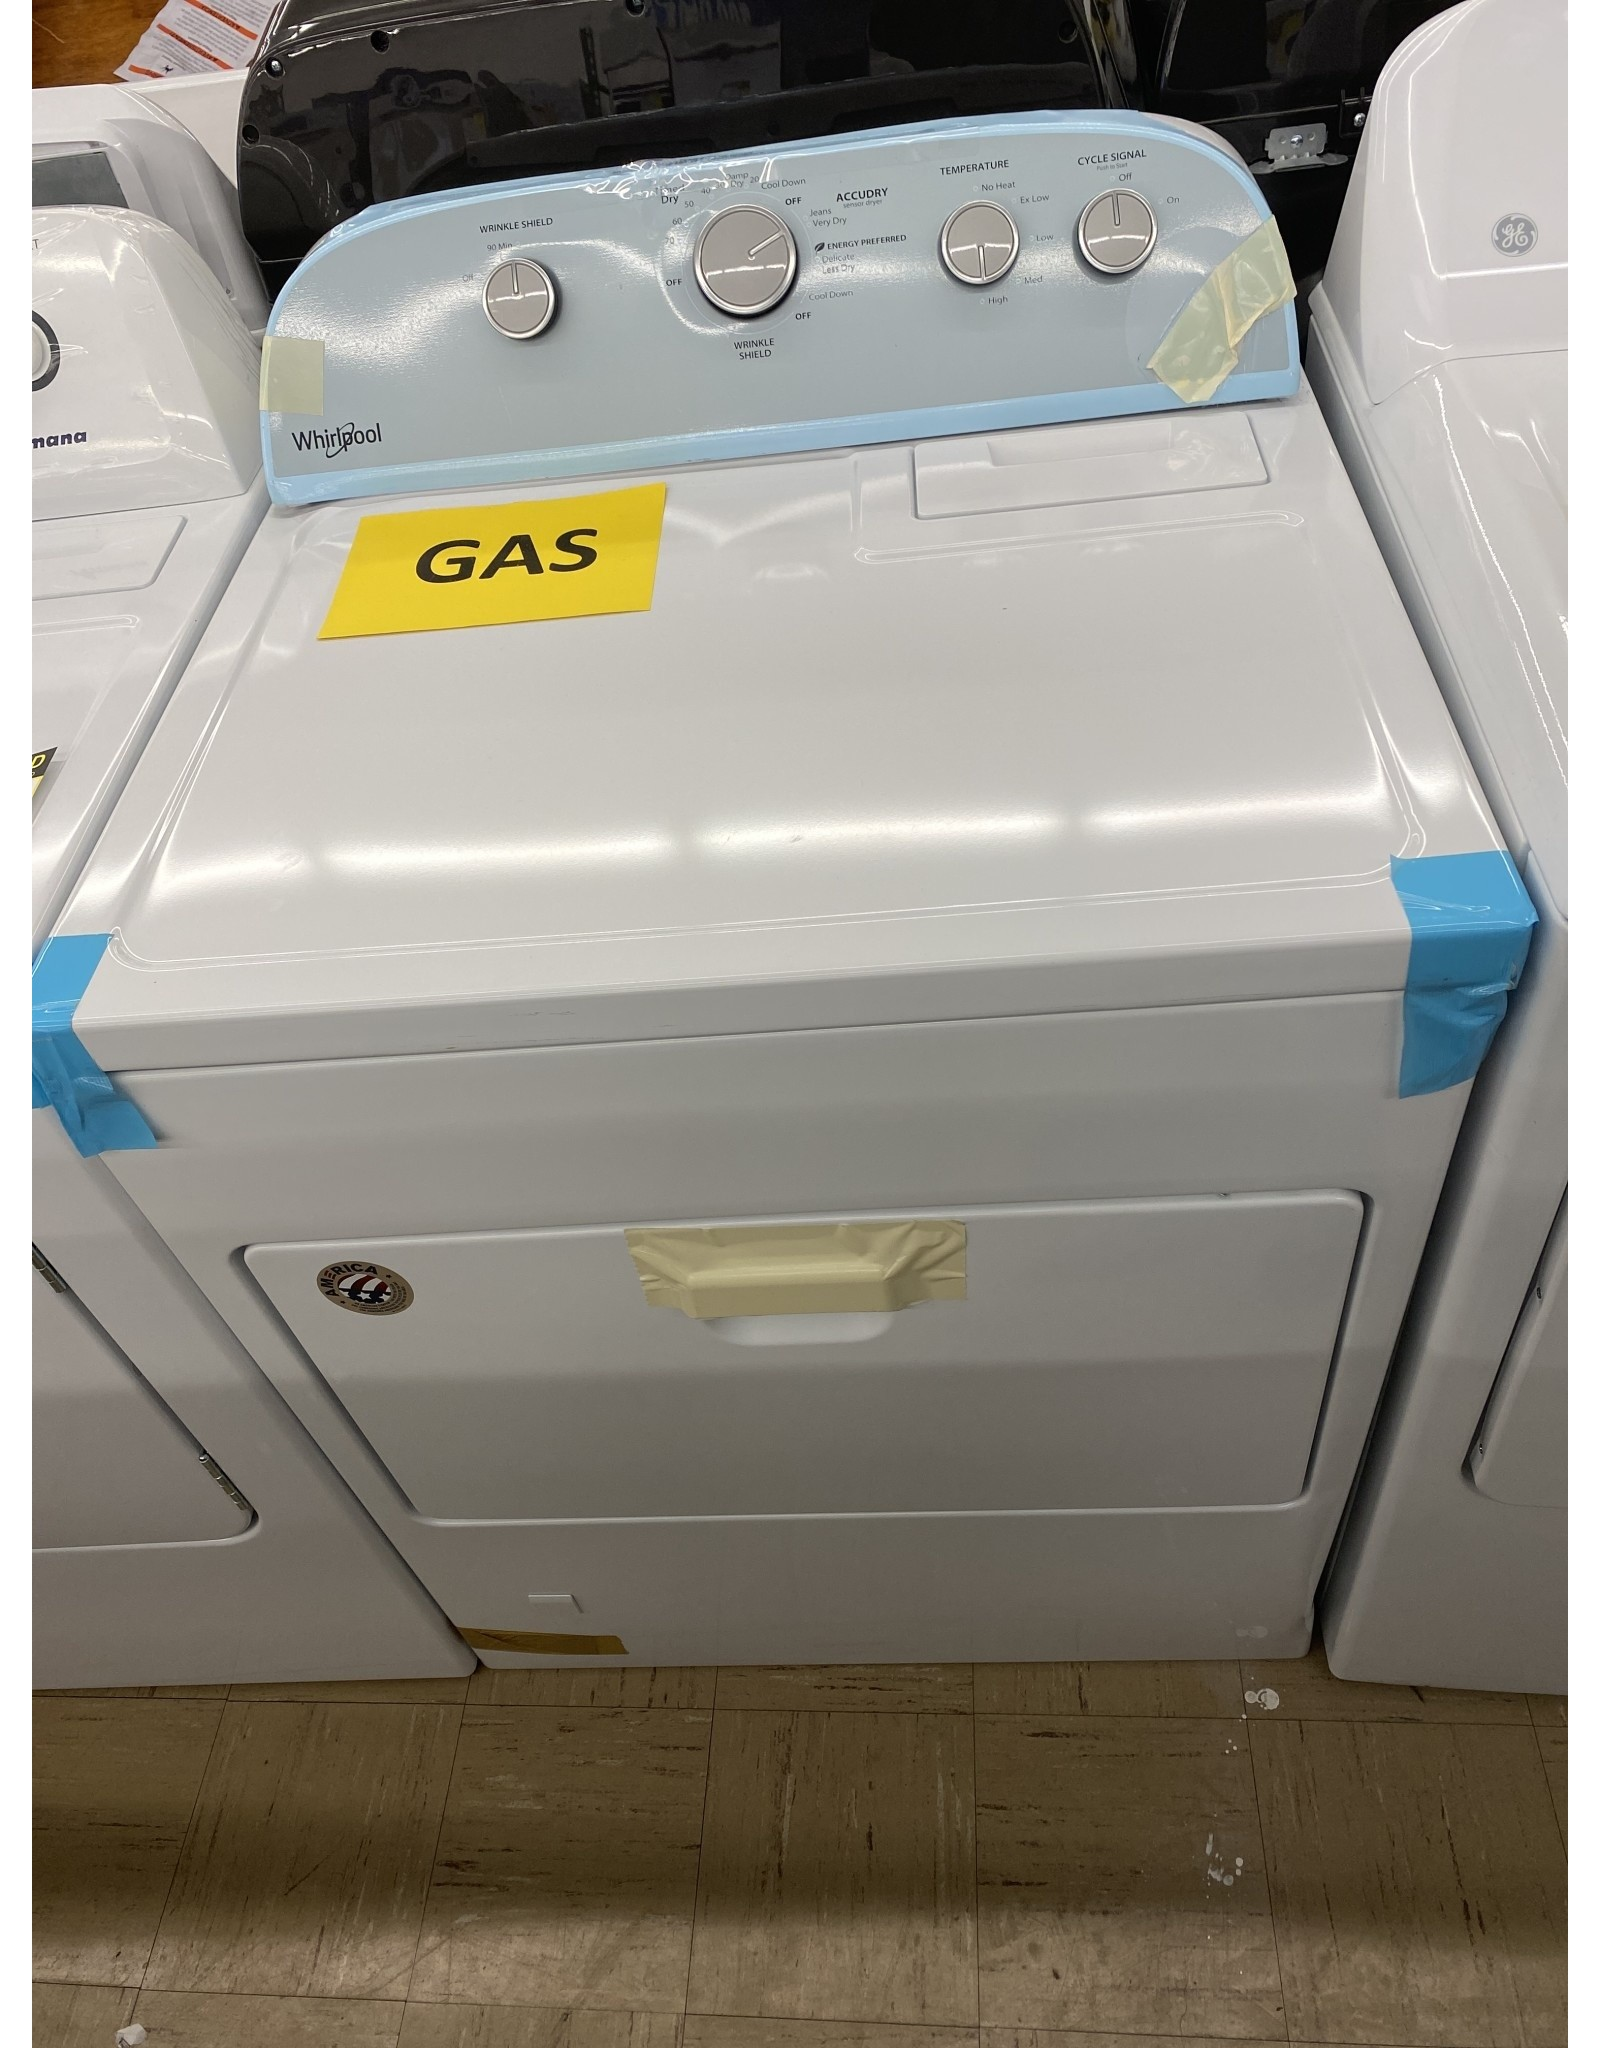 WHIRLPOOL wg05000dw3  7.0 cu. ft. 120-Volt White Gas Vented Dryer with Wrinkle Shield Plus